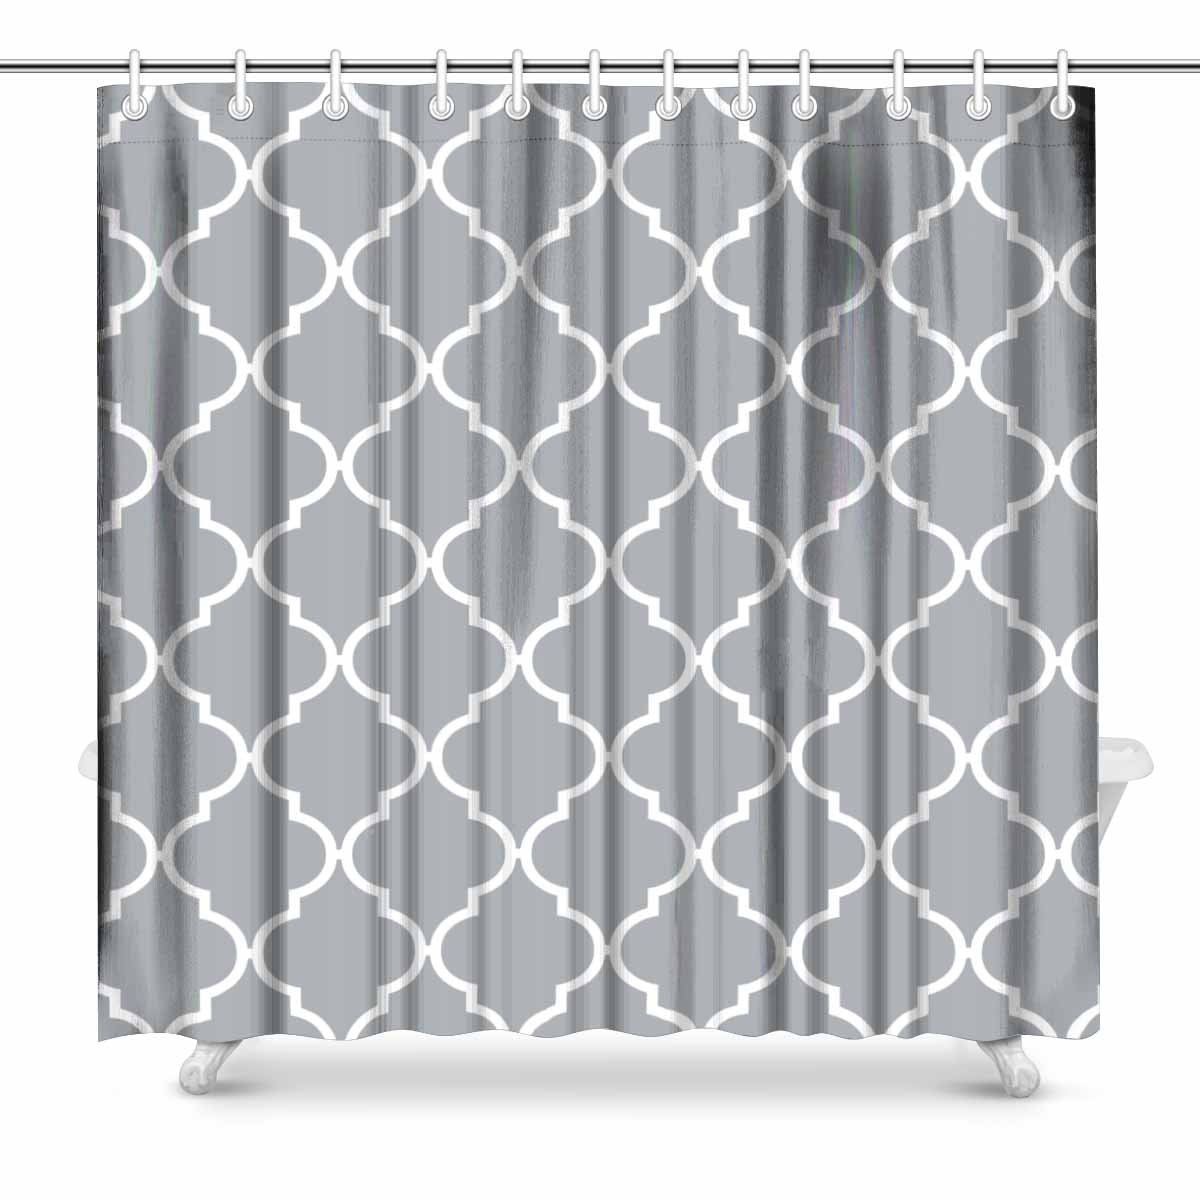 Amazon.com: InterestPrint Black and White Houndstooth in Patchwork ...